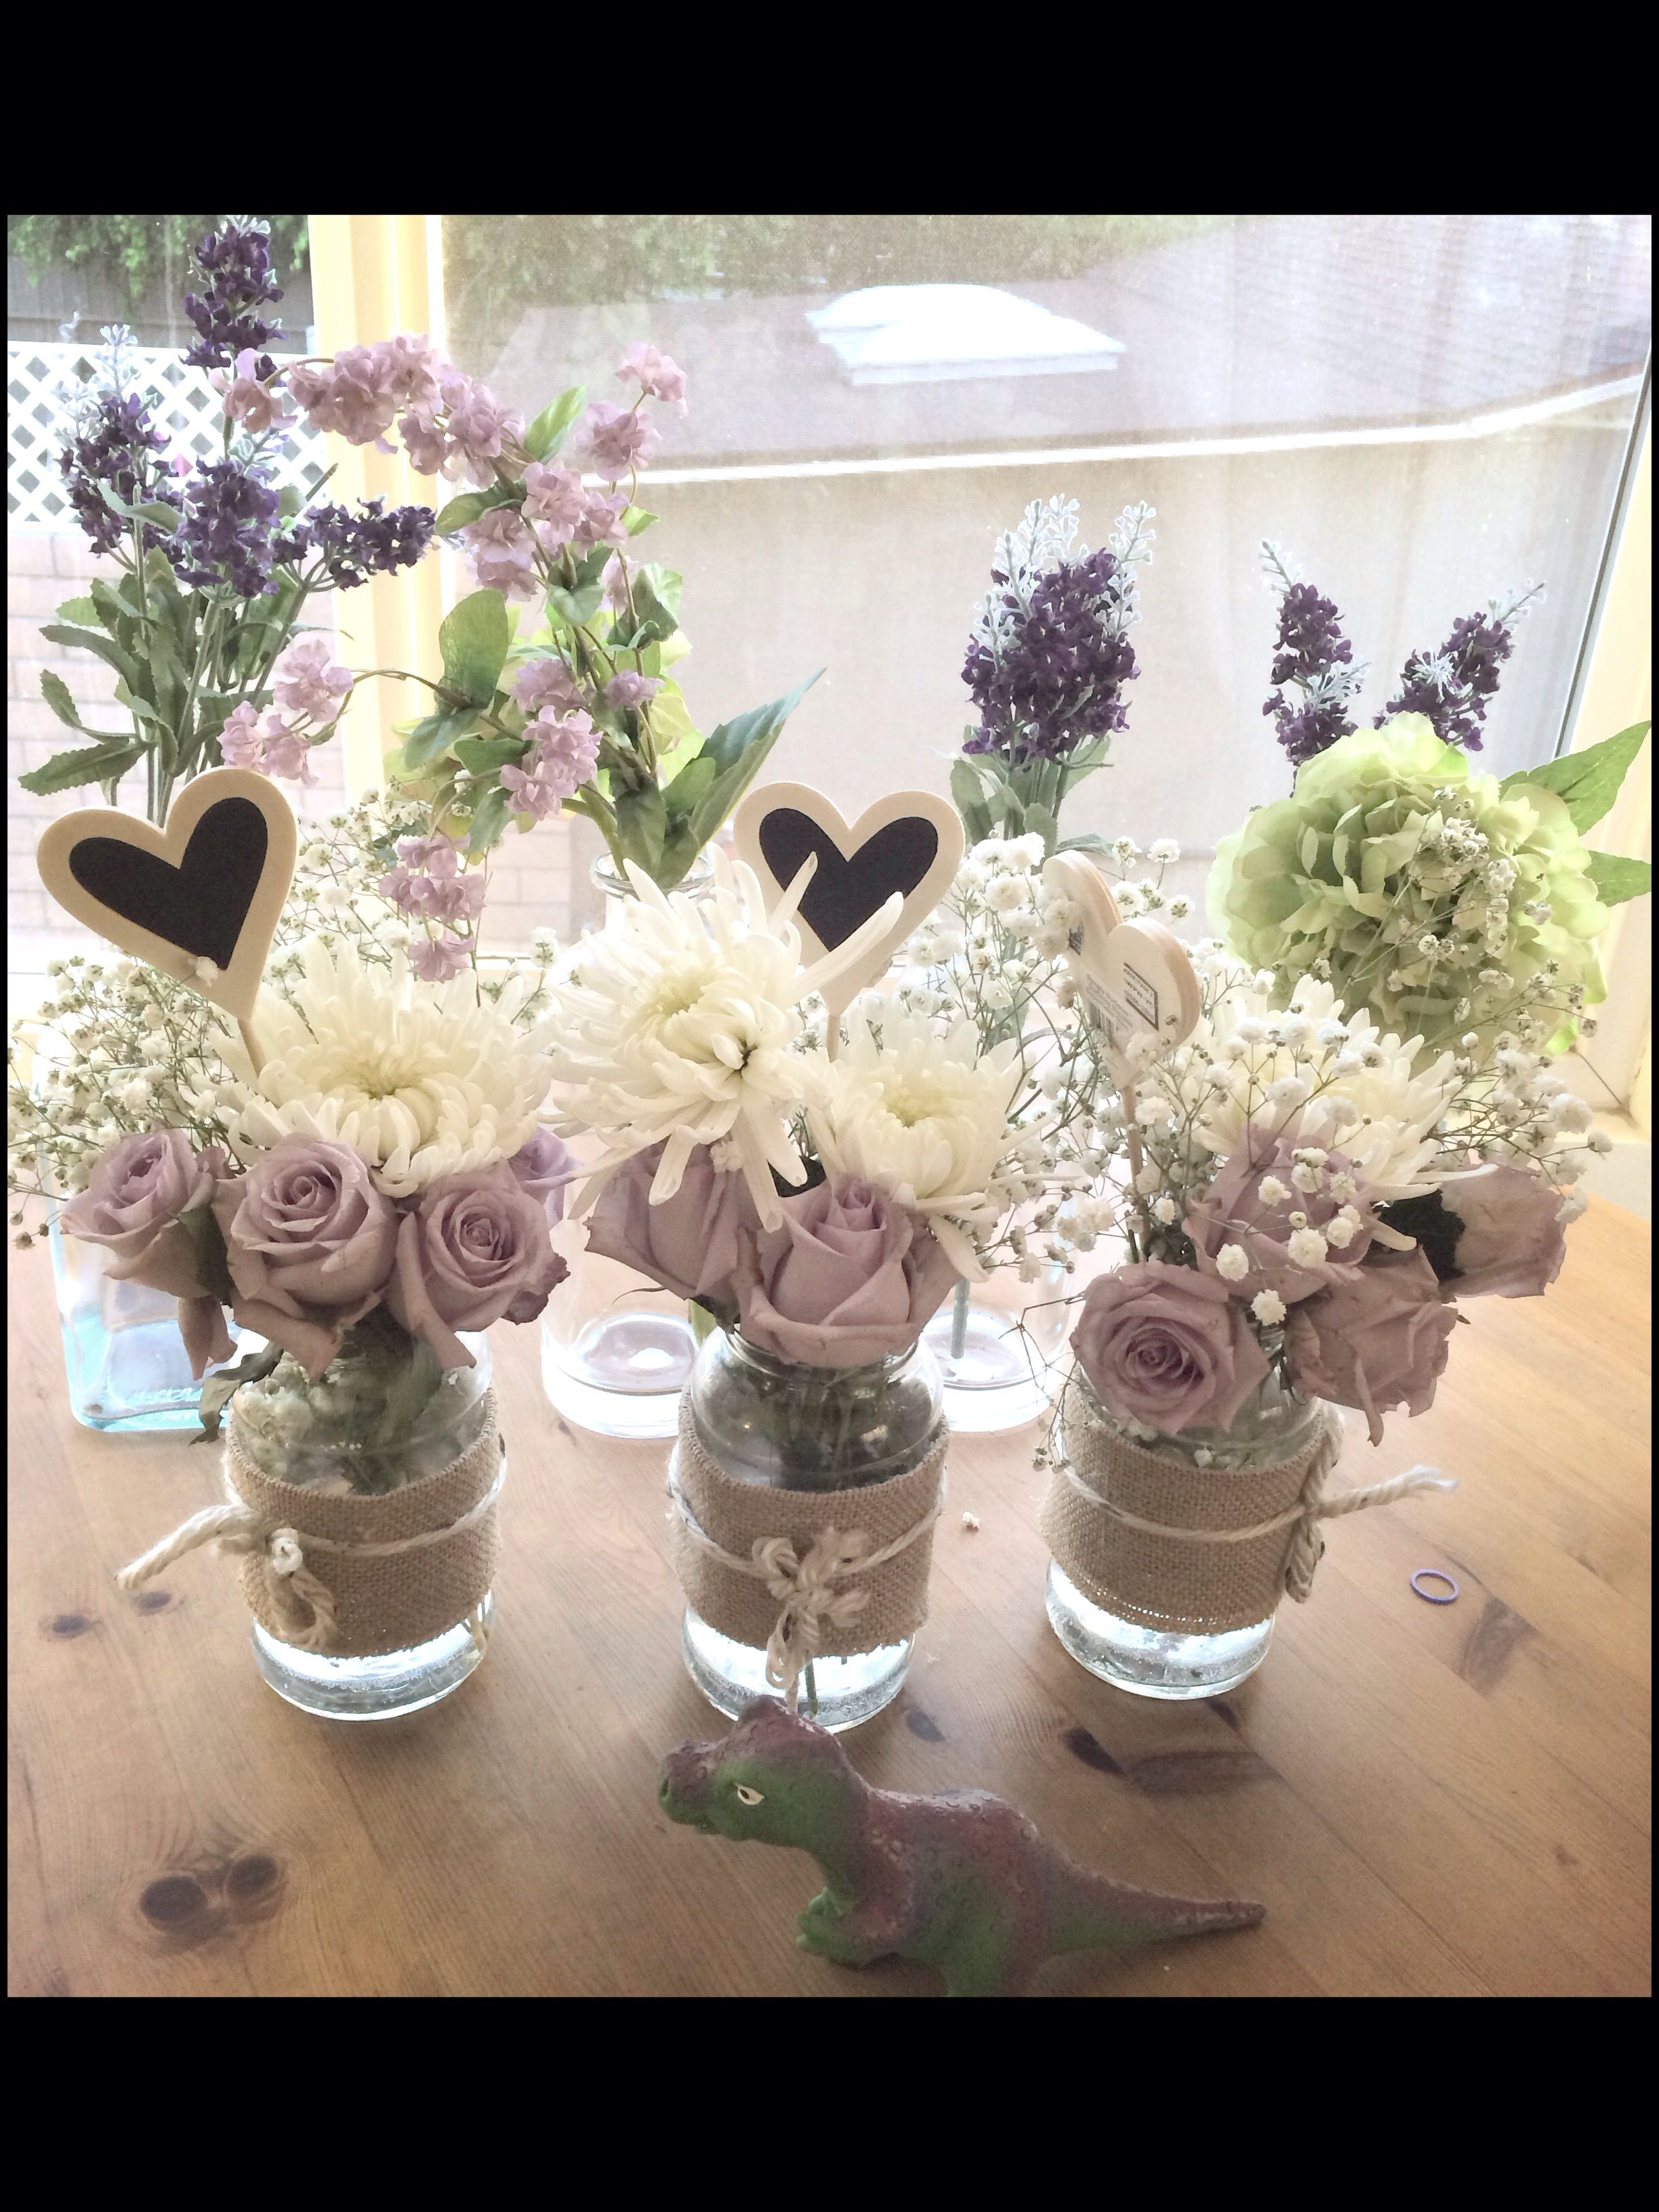 Simple centerpieces I made for my mom's birthday using ragu sauce jars! #diy #lavender #burlap #babysbreath #flowers 5/3/14